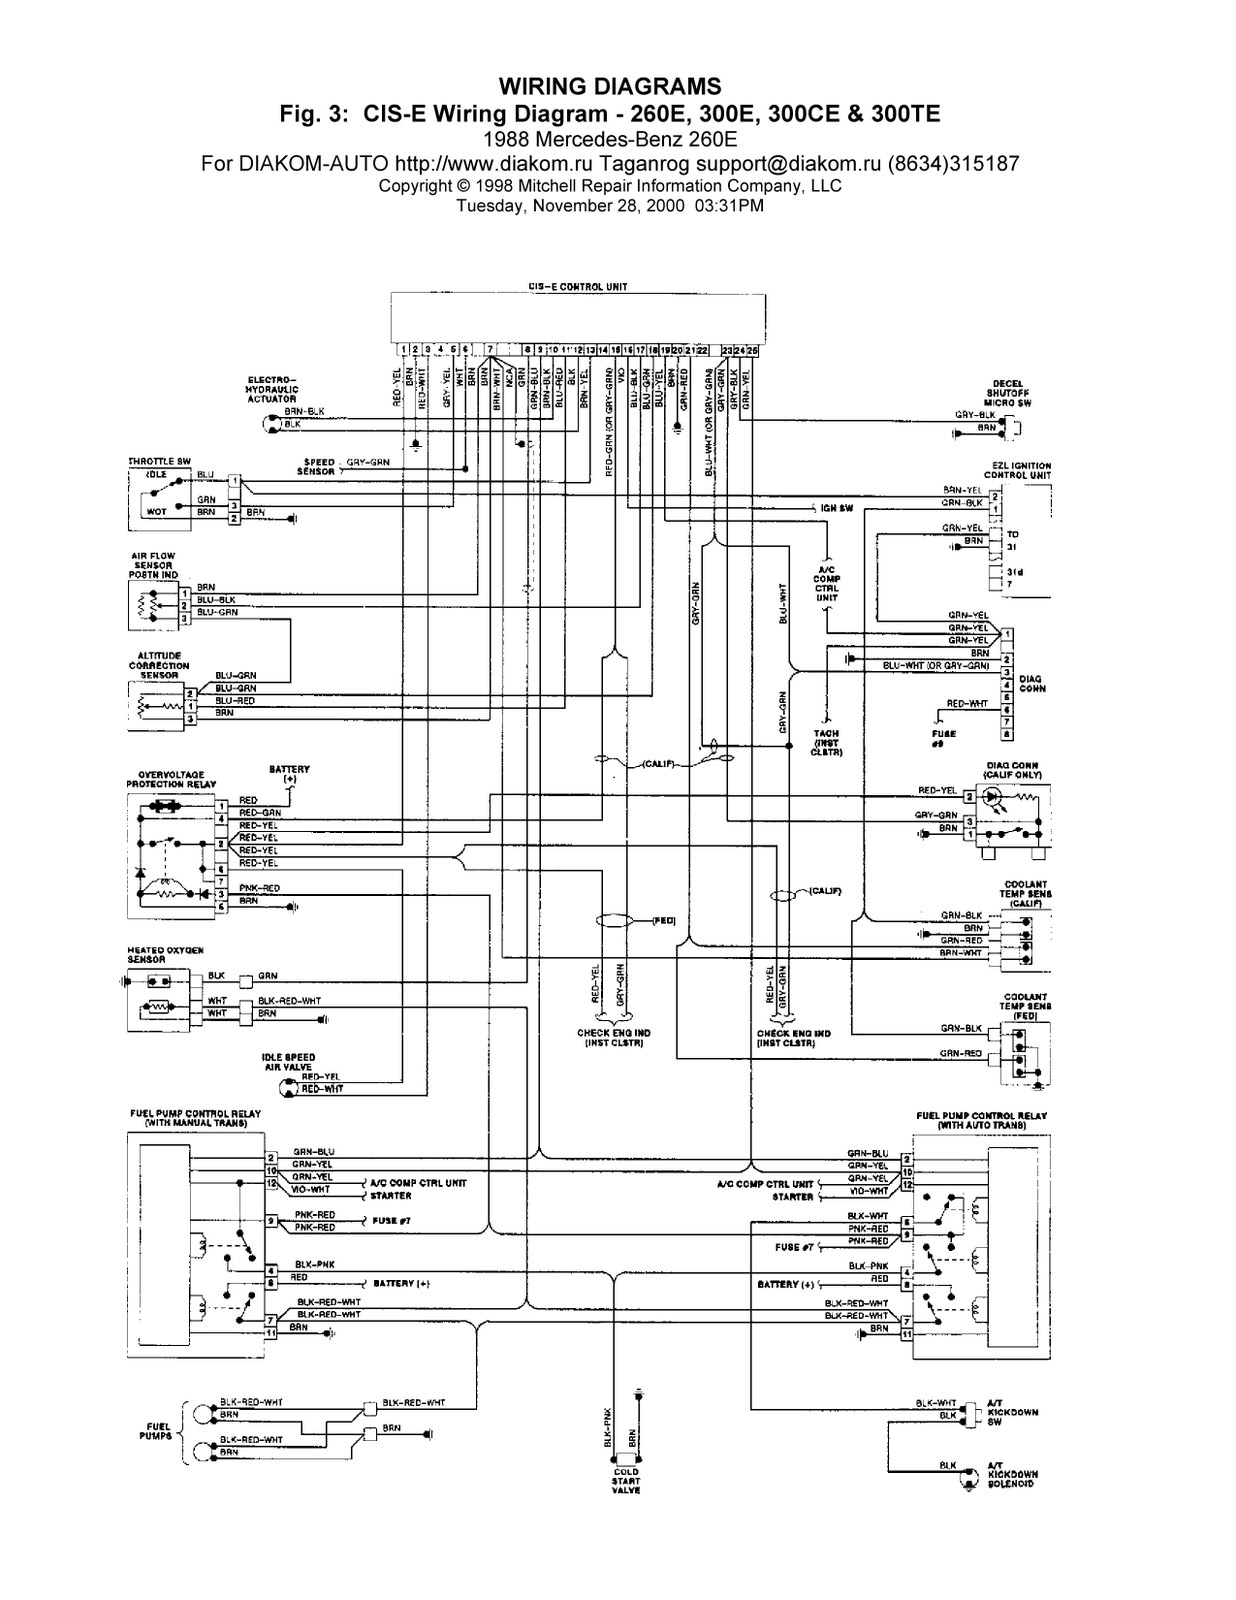 ml320 wiring diagram all wiring diagram Nissan Frontier Wiring Diagram